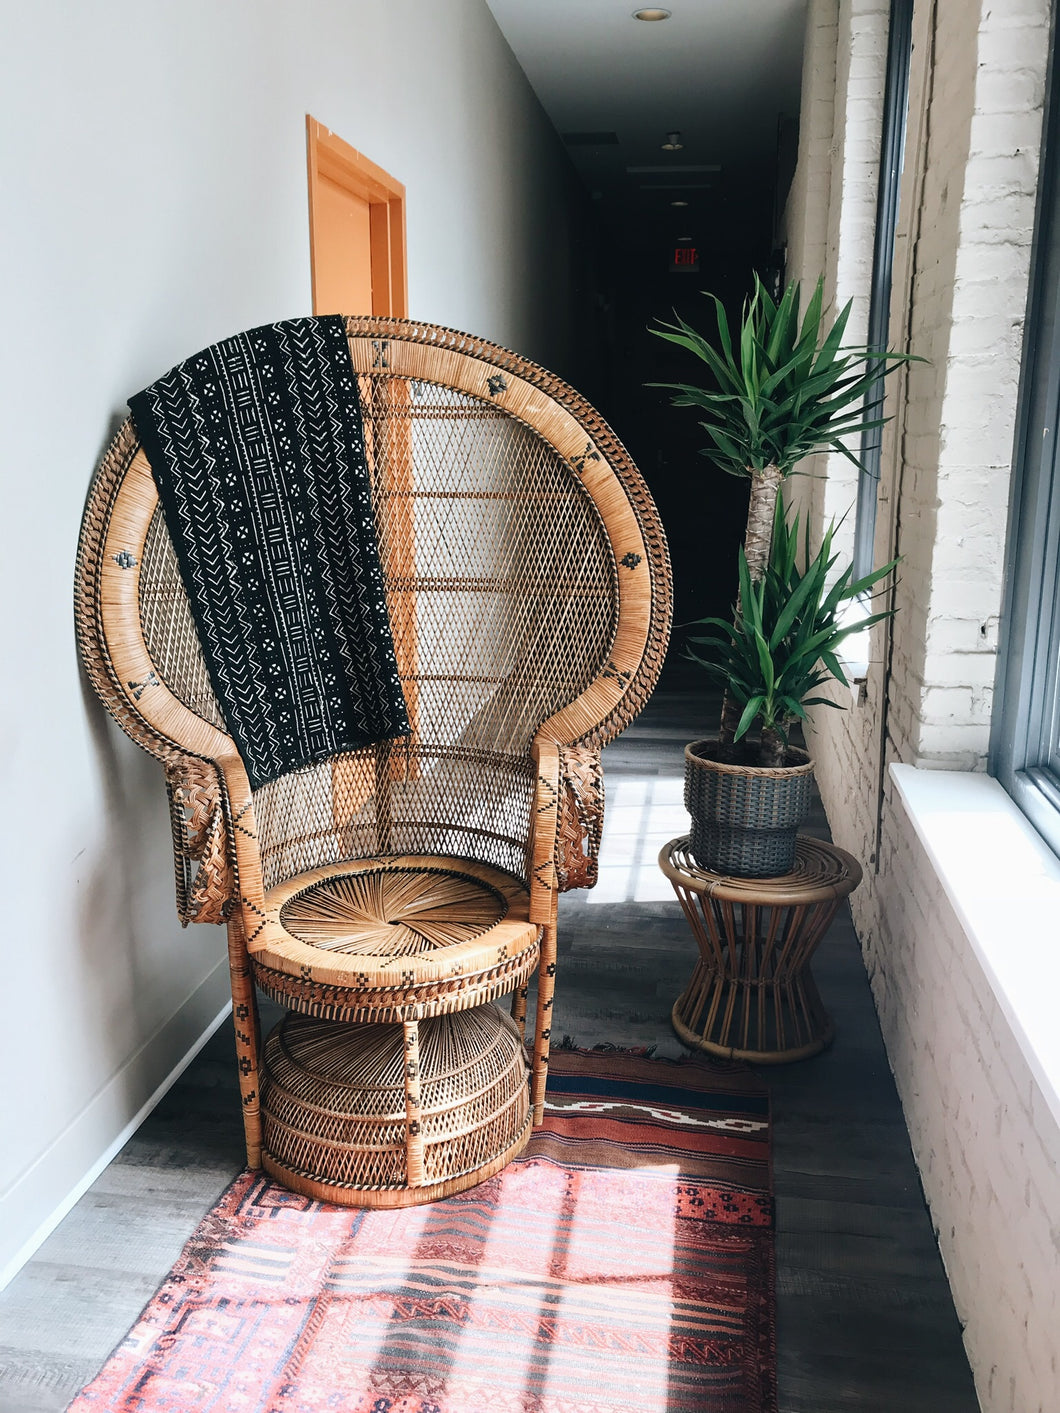 Vintage 1970's Rattan/Wicker Large Peacock Chair // Local Delivery Only